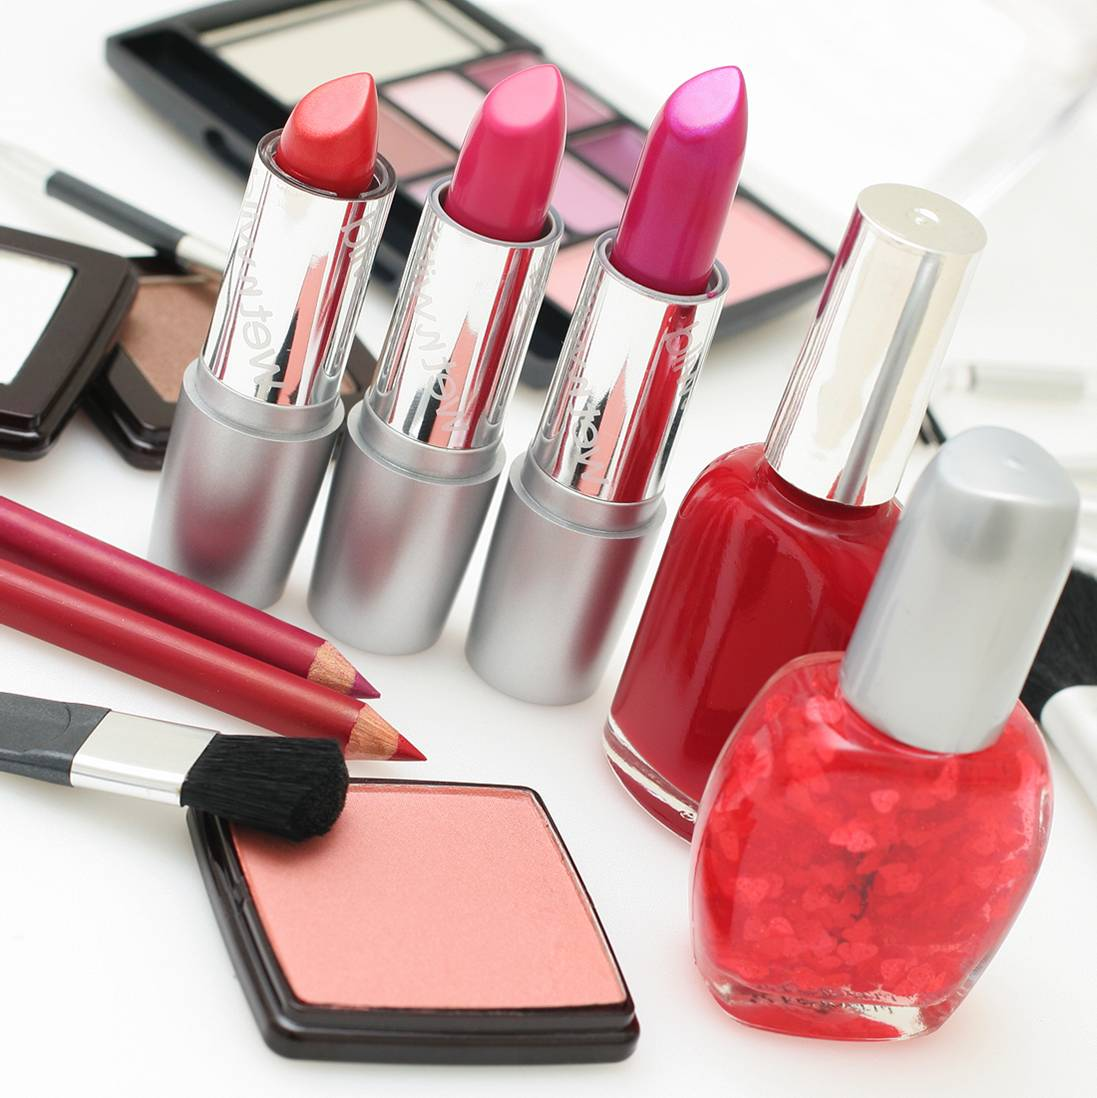 cosmetics products in Luxembourg